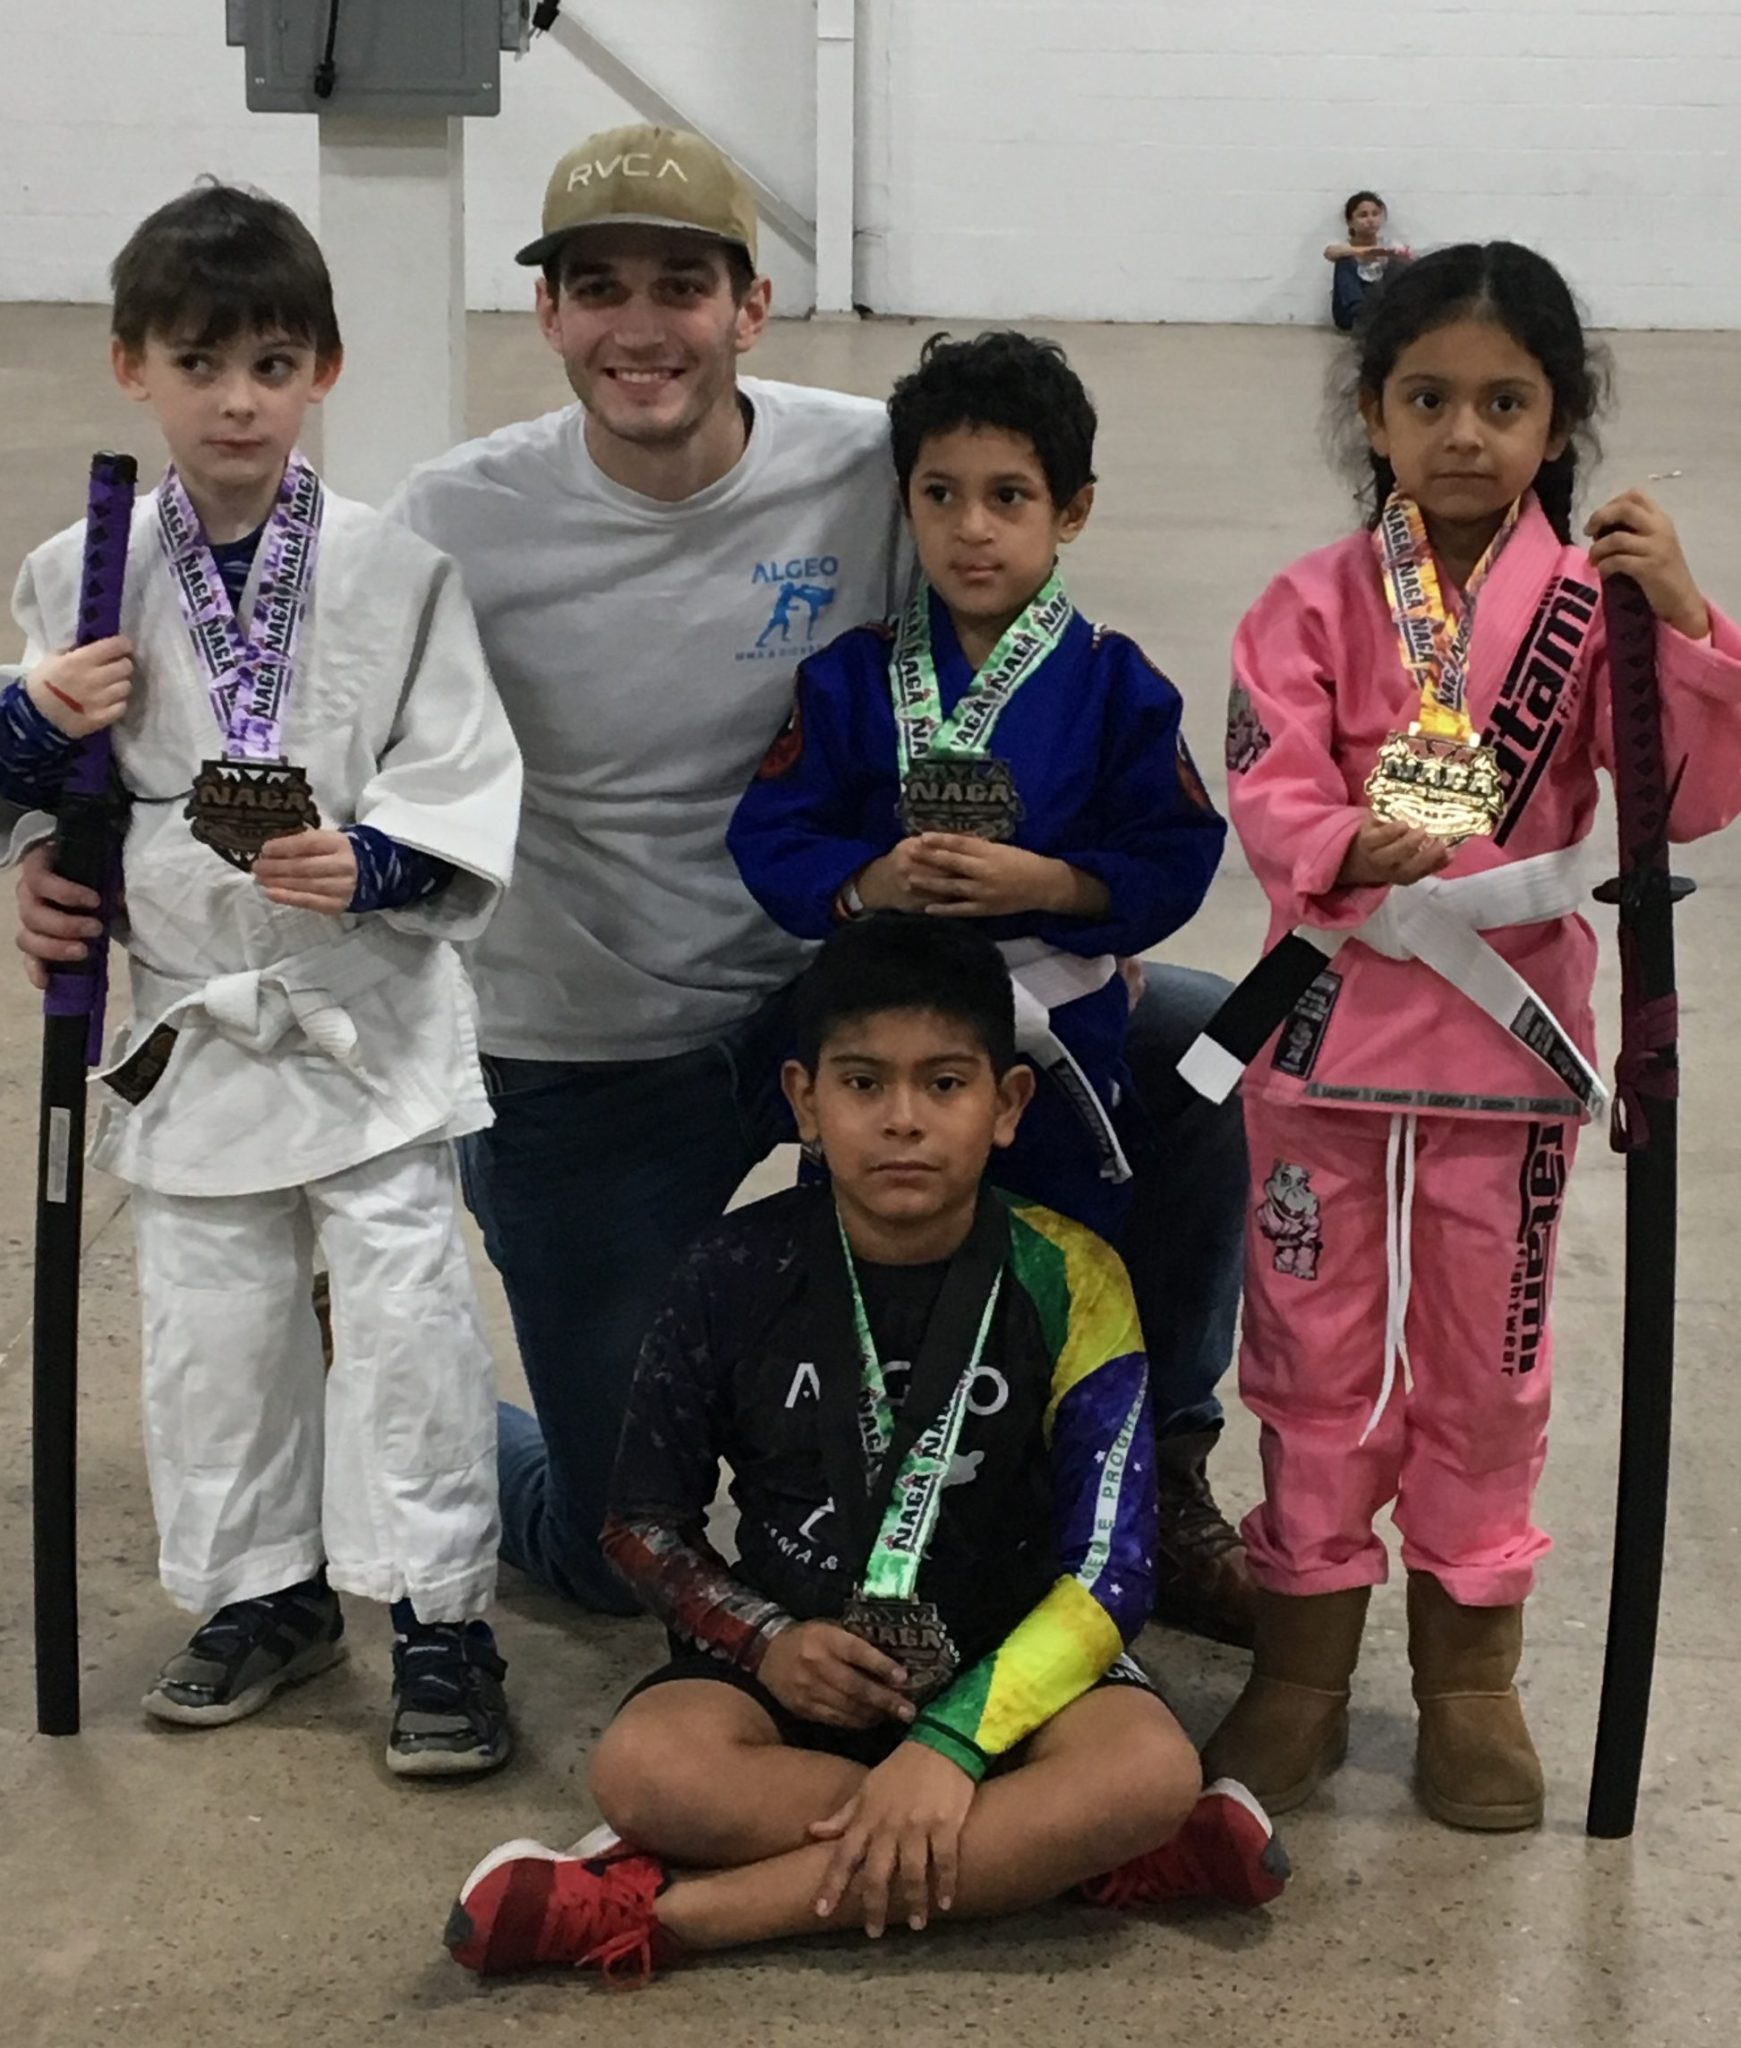 Anthony Brown Kids BJJ instructo